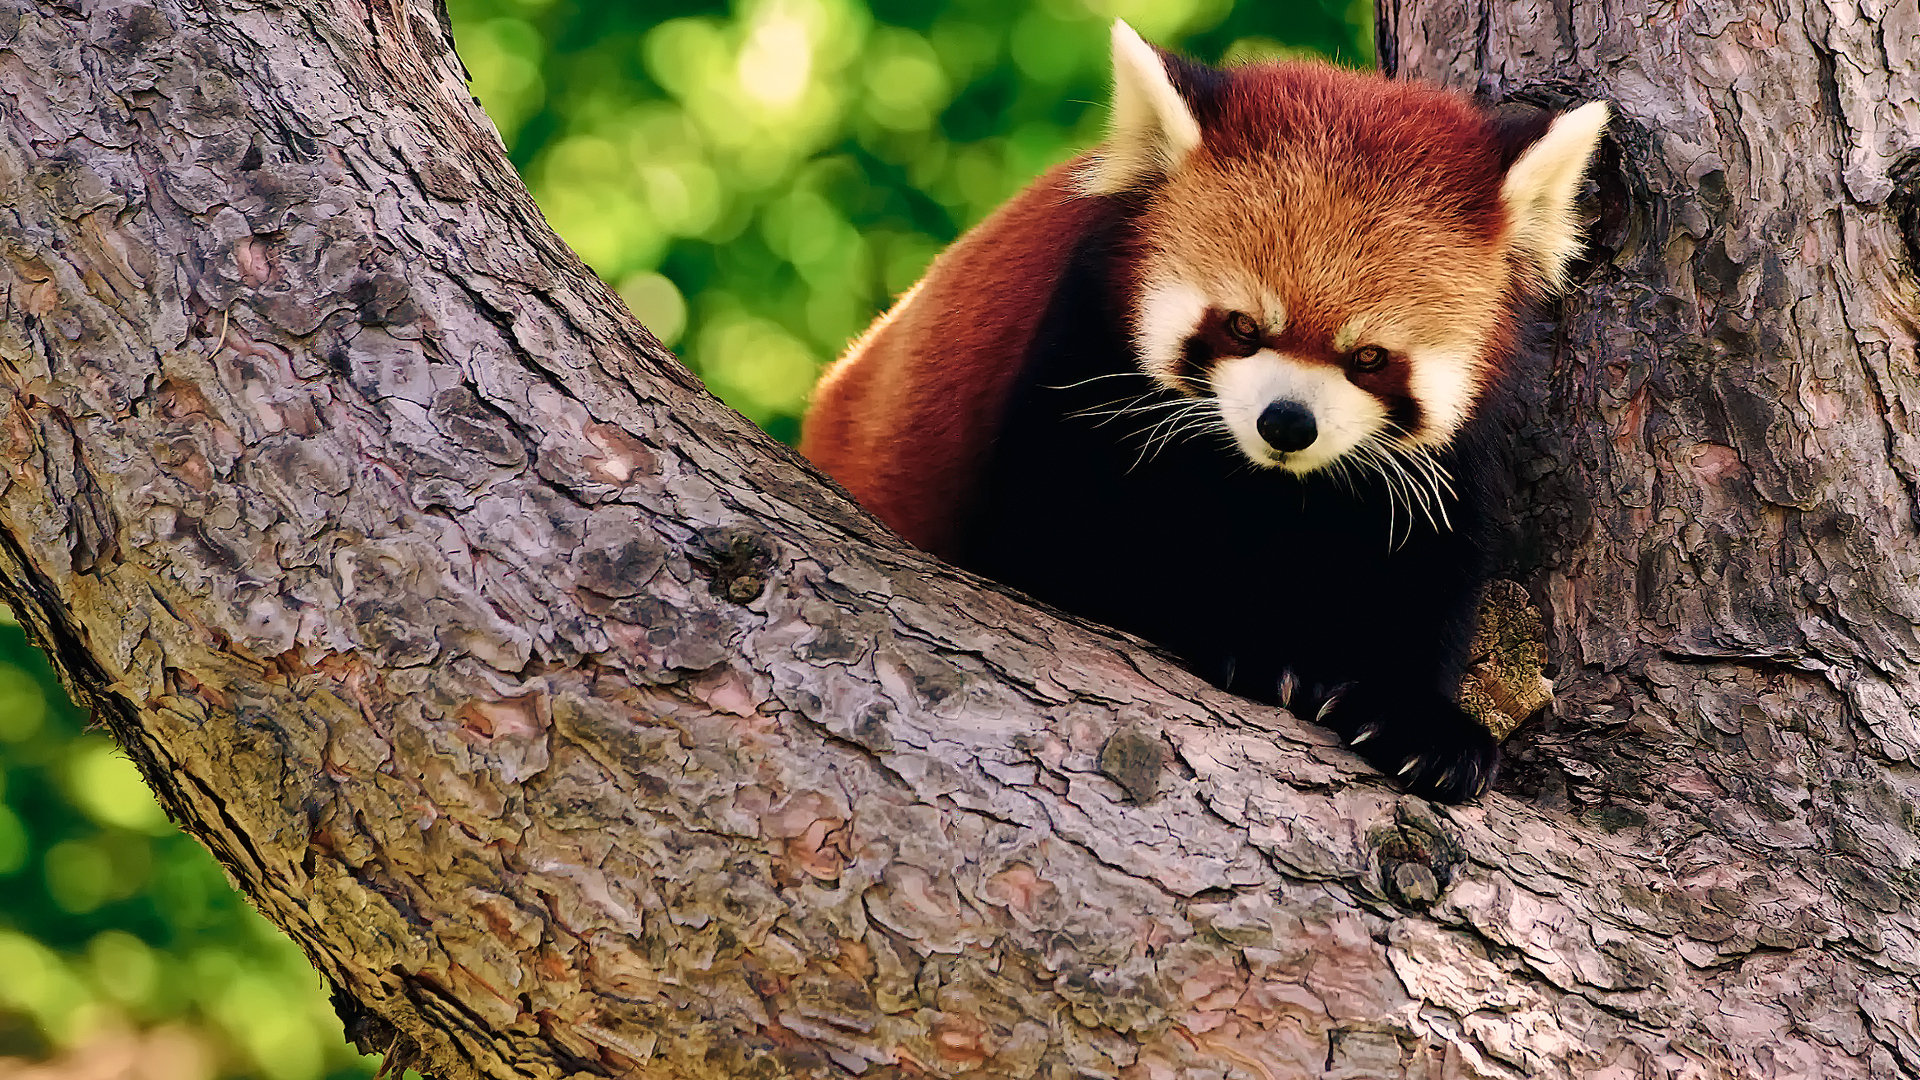 Download full hd 1920x1080 Red Panda PC wallpaper ID:64051 for free